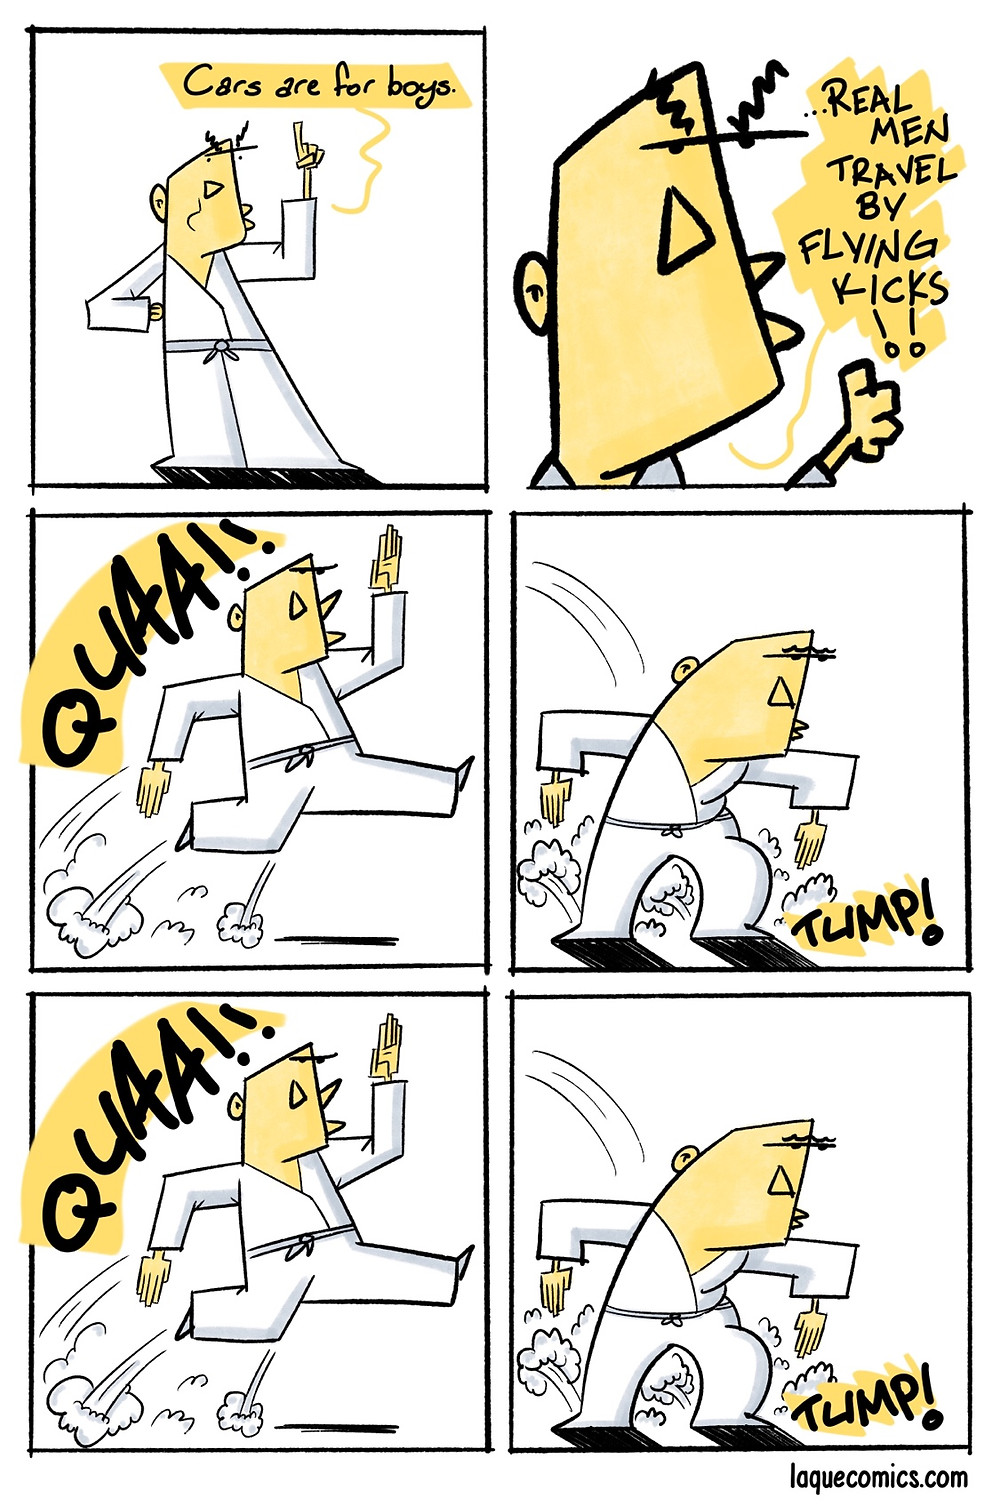 A six-panel comic about how the real men travel.